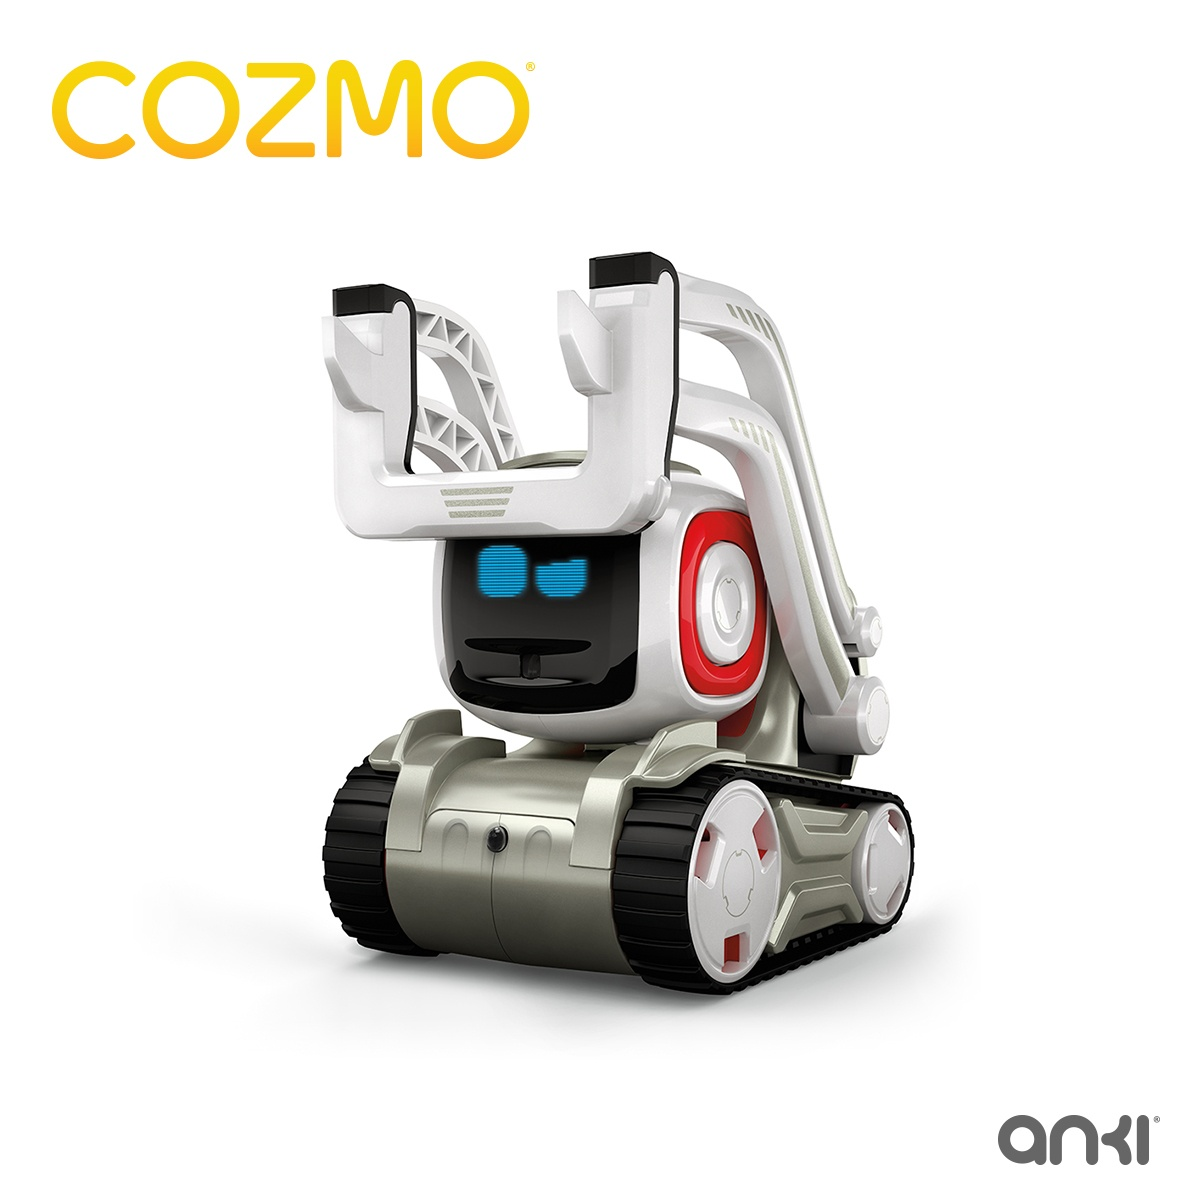 cozmo_lift-up.jpg